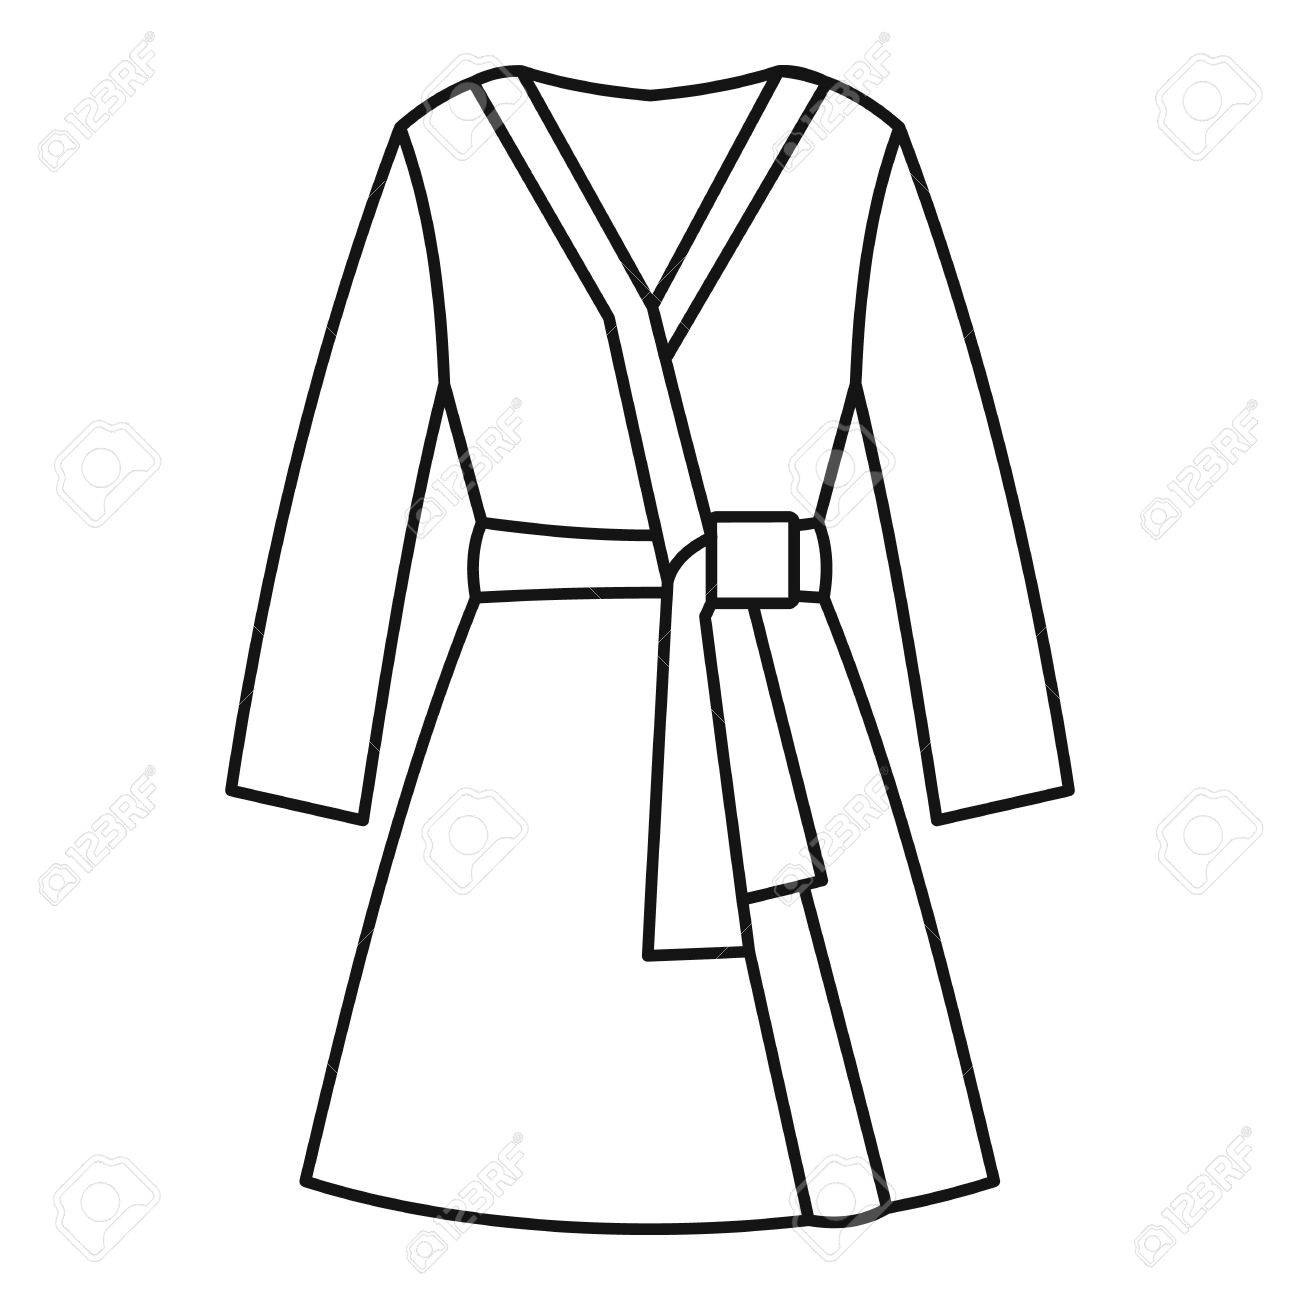 Bathrobe Icon Outline Illustration Of Vector For Web Design Stock